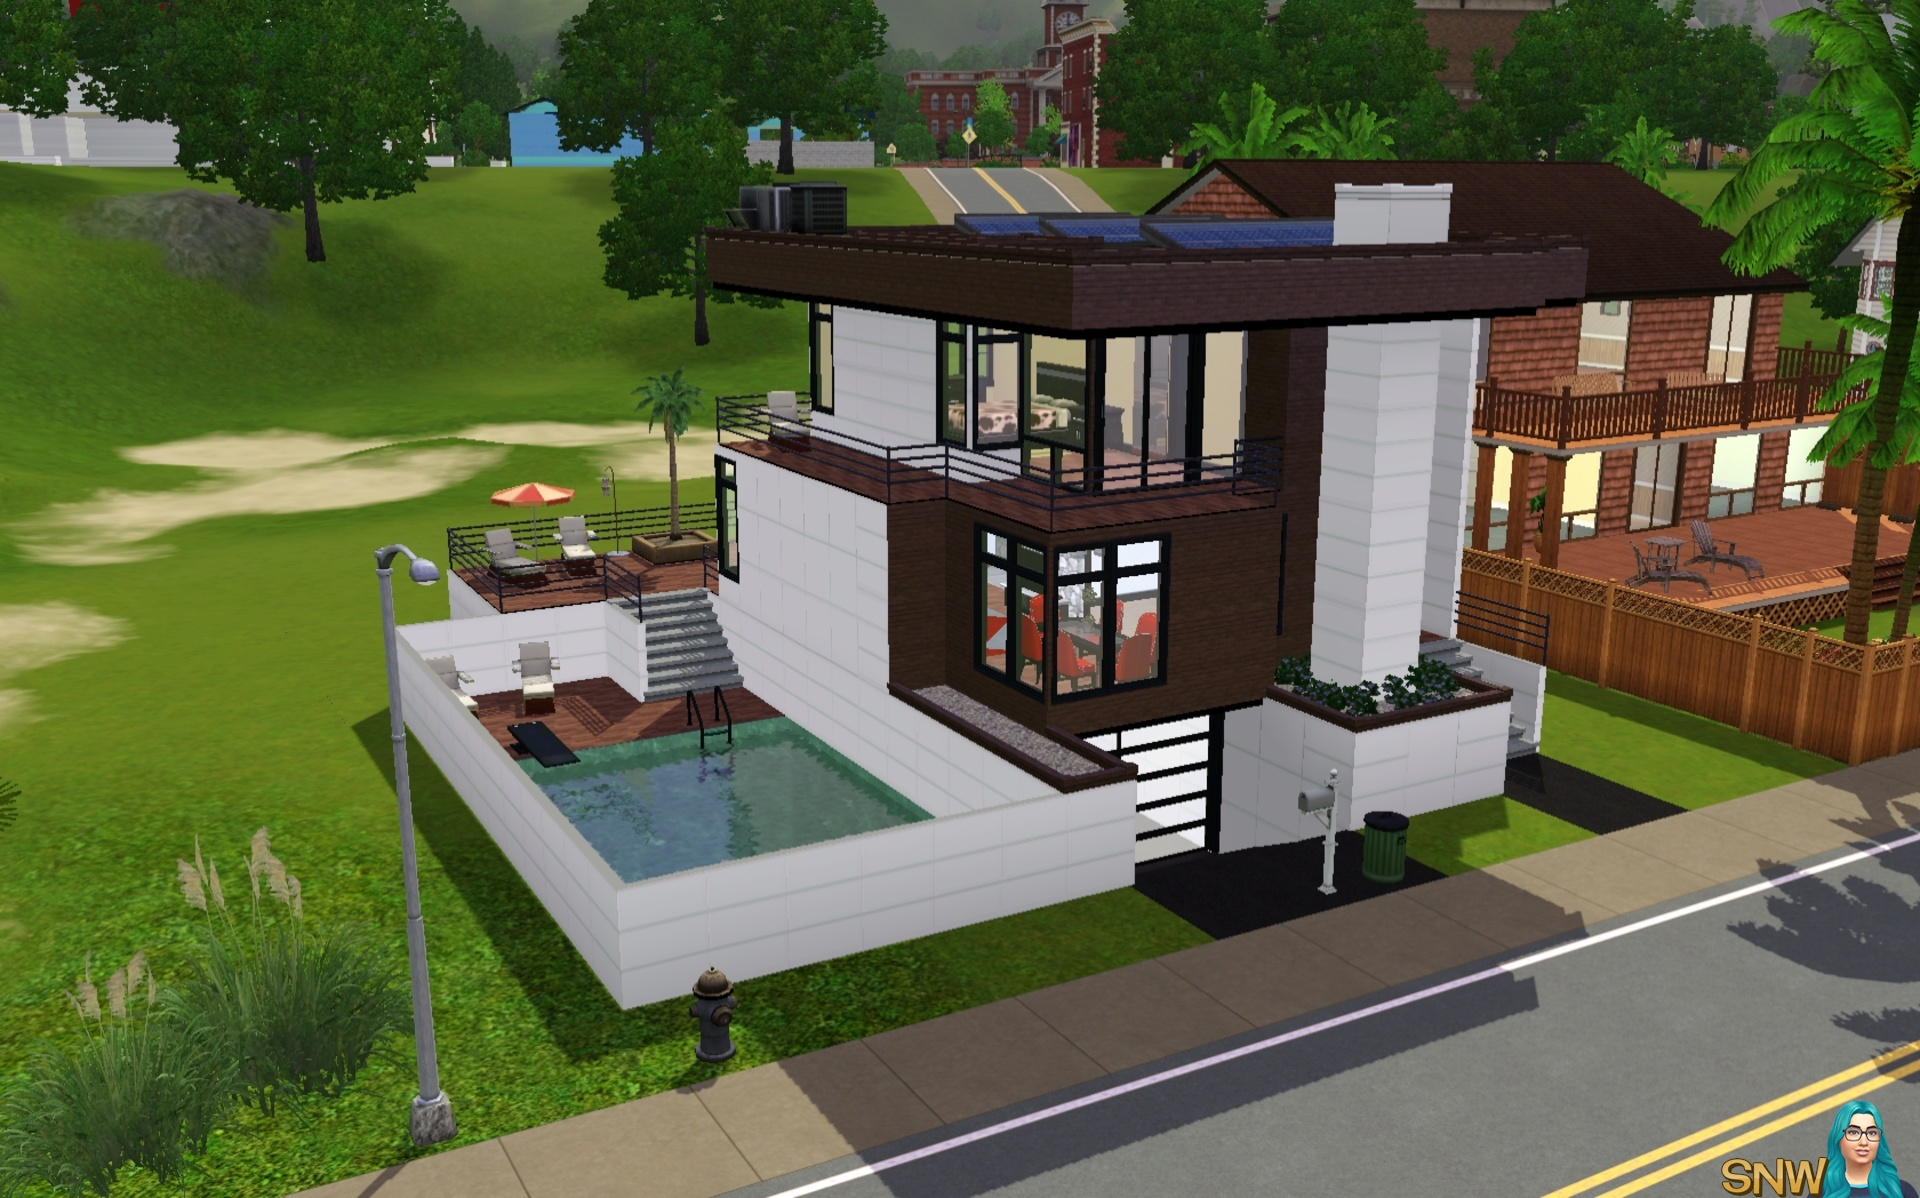 The Sims 3 Lots | SNW | SimsNetwork com